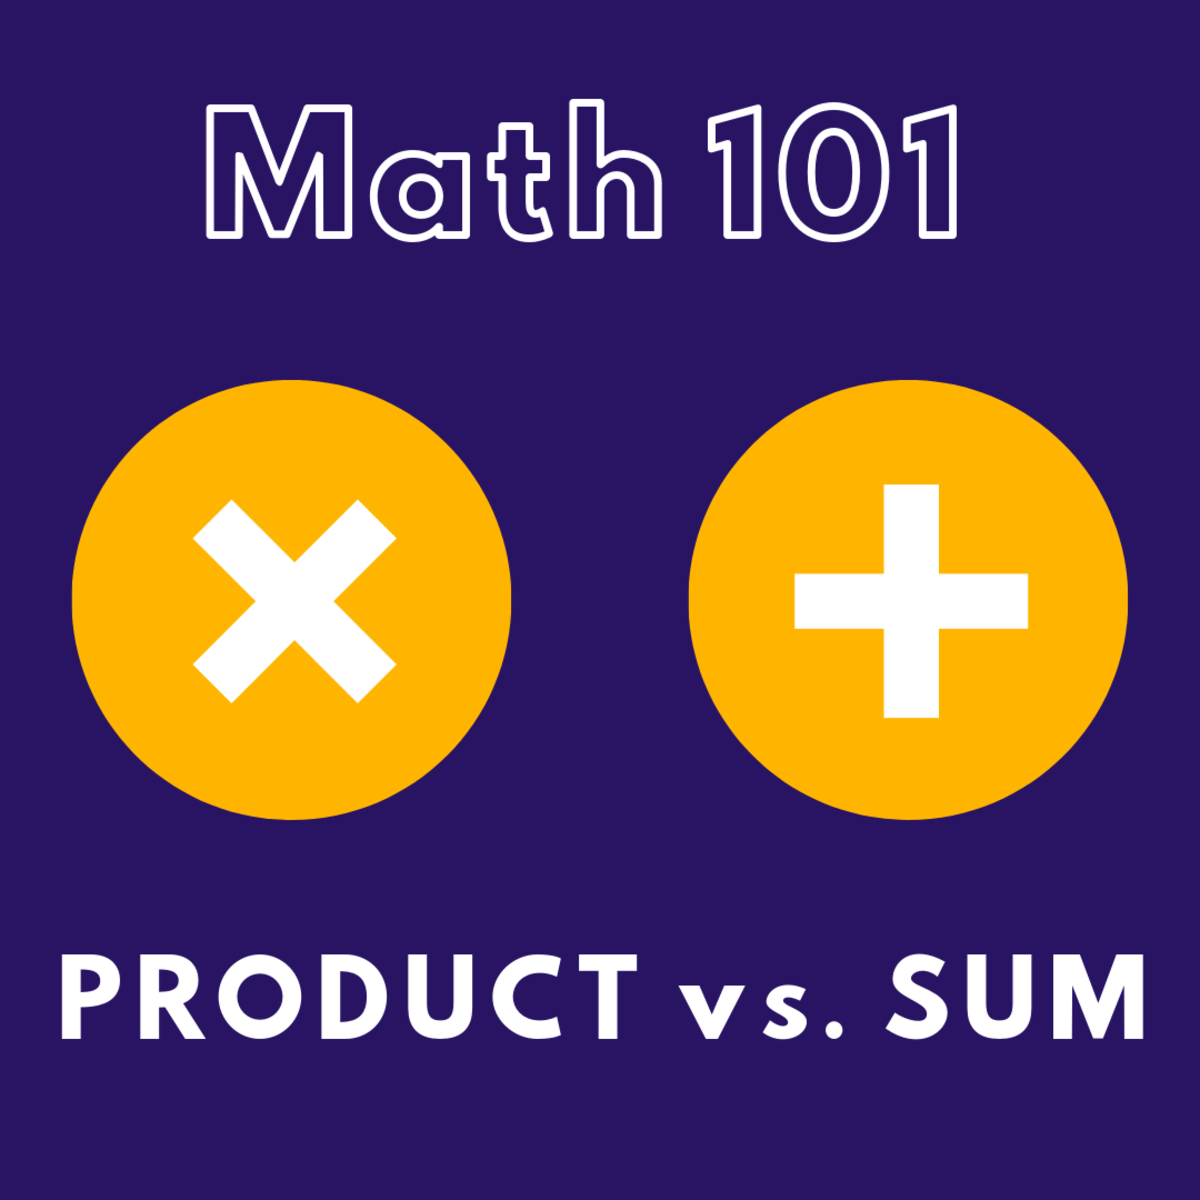 How to Find the Product and Sum of Two (Or More) Numbers